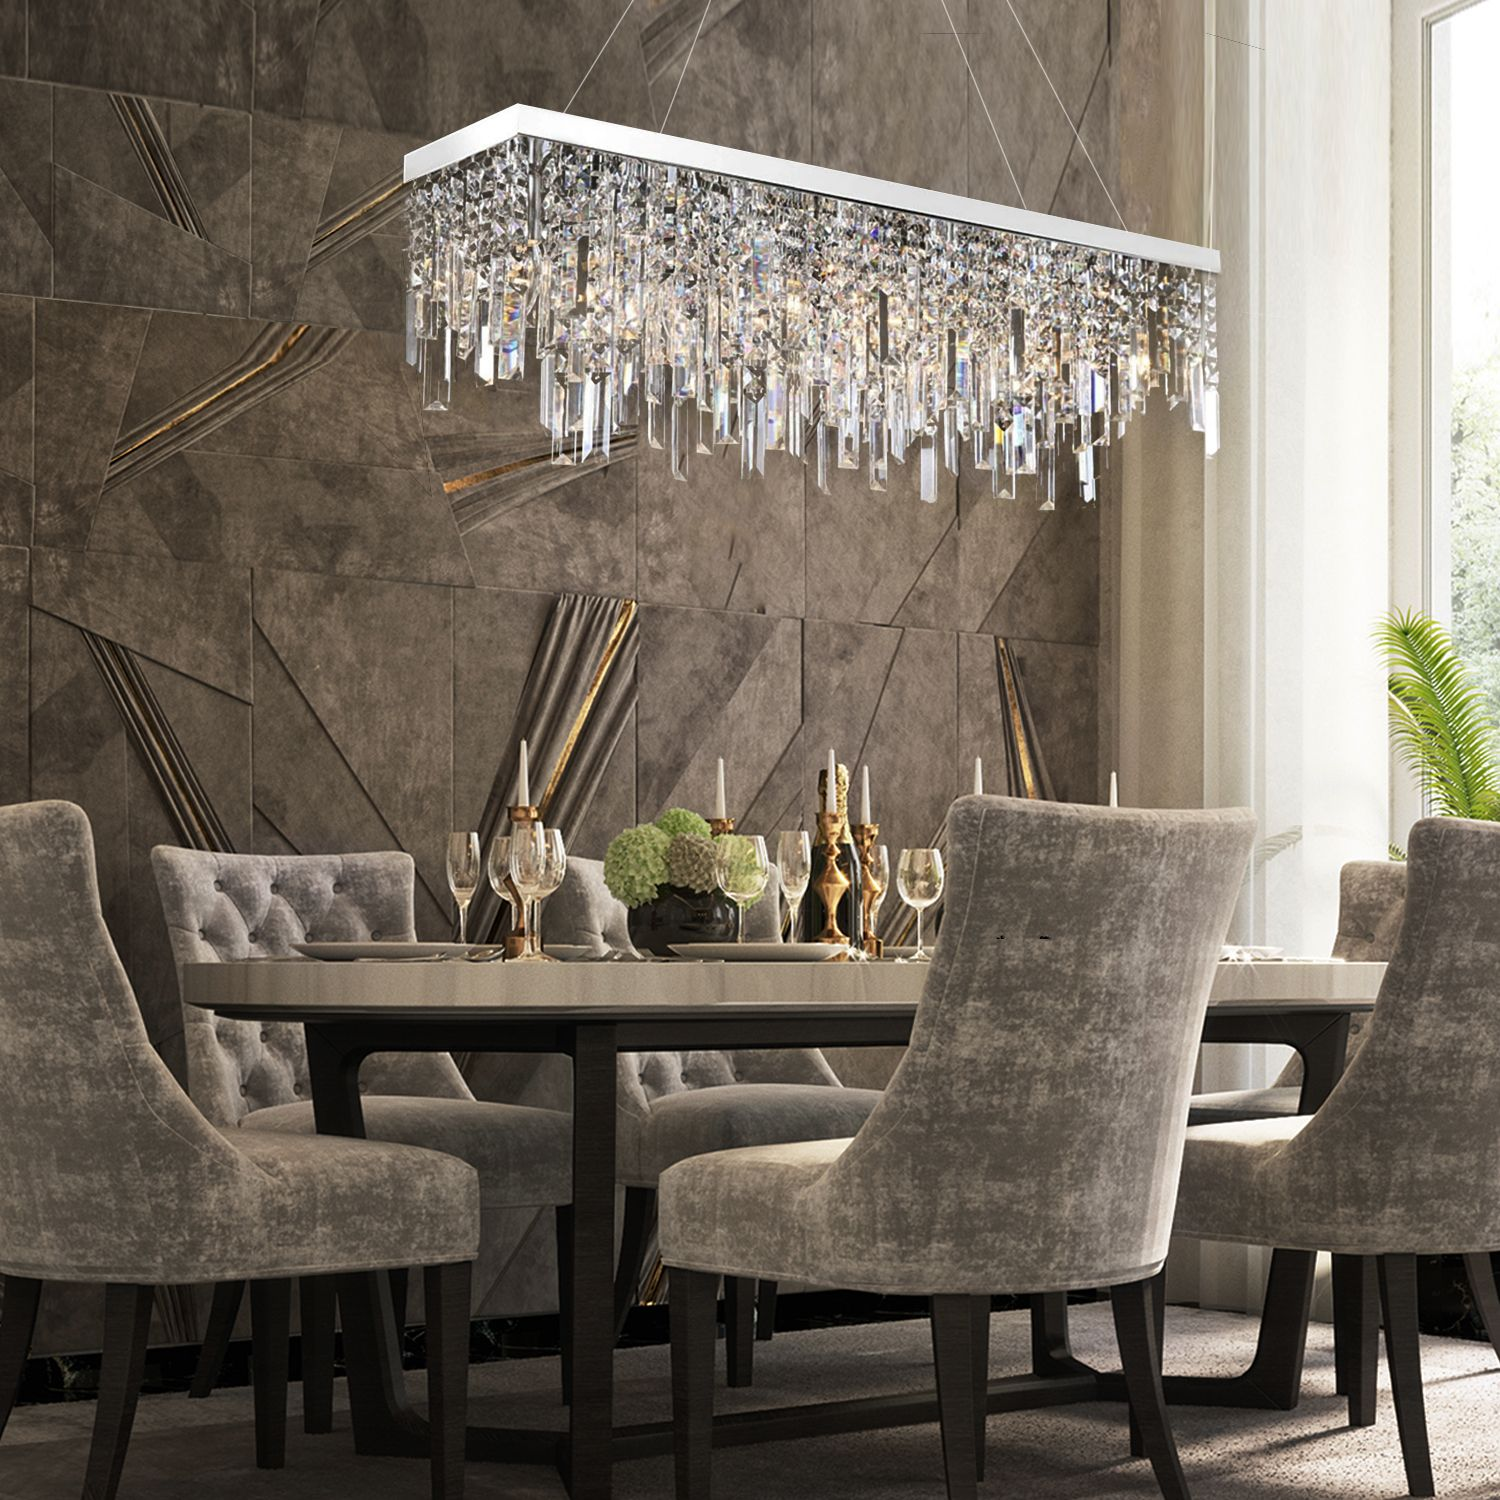 Rectangular Crystal Chandelier With Linear Design Dining Room In 2020 Contemporary Dining Room Lighting Contemporary Dining Room Decor Luxury Dining Room